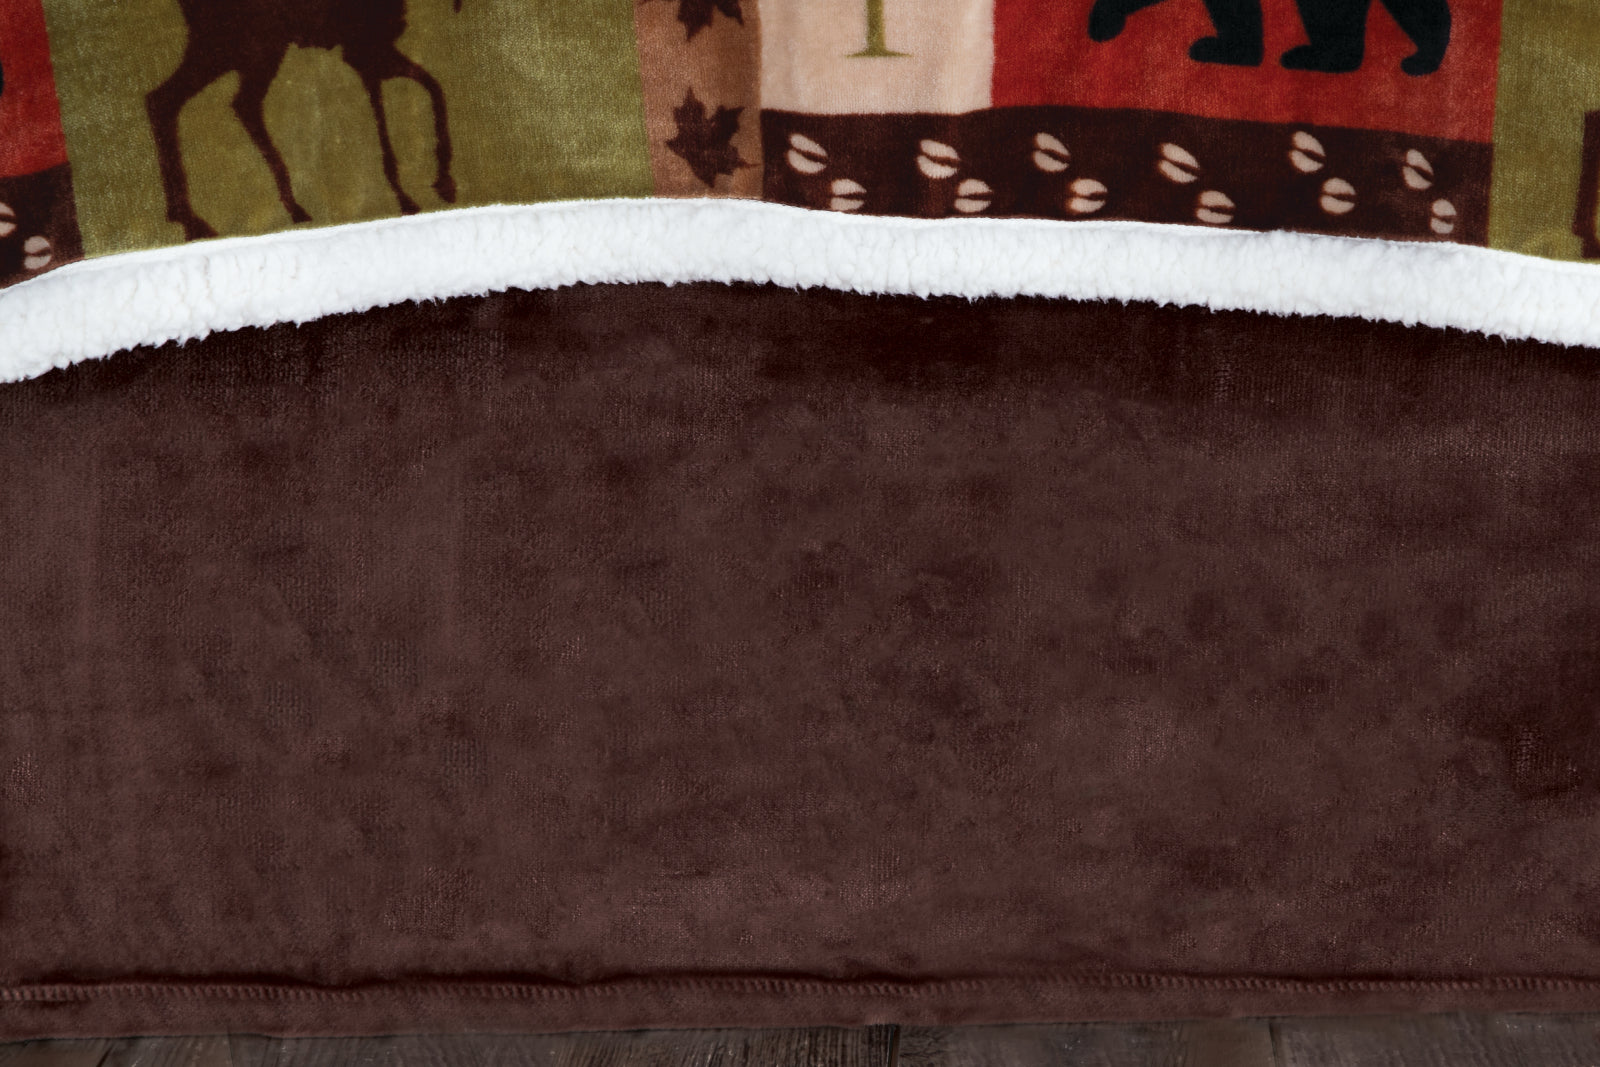 Patchwork Lodge Bedskirt Carstens - unique linens online